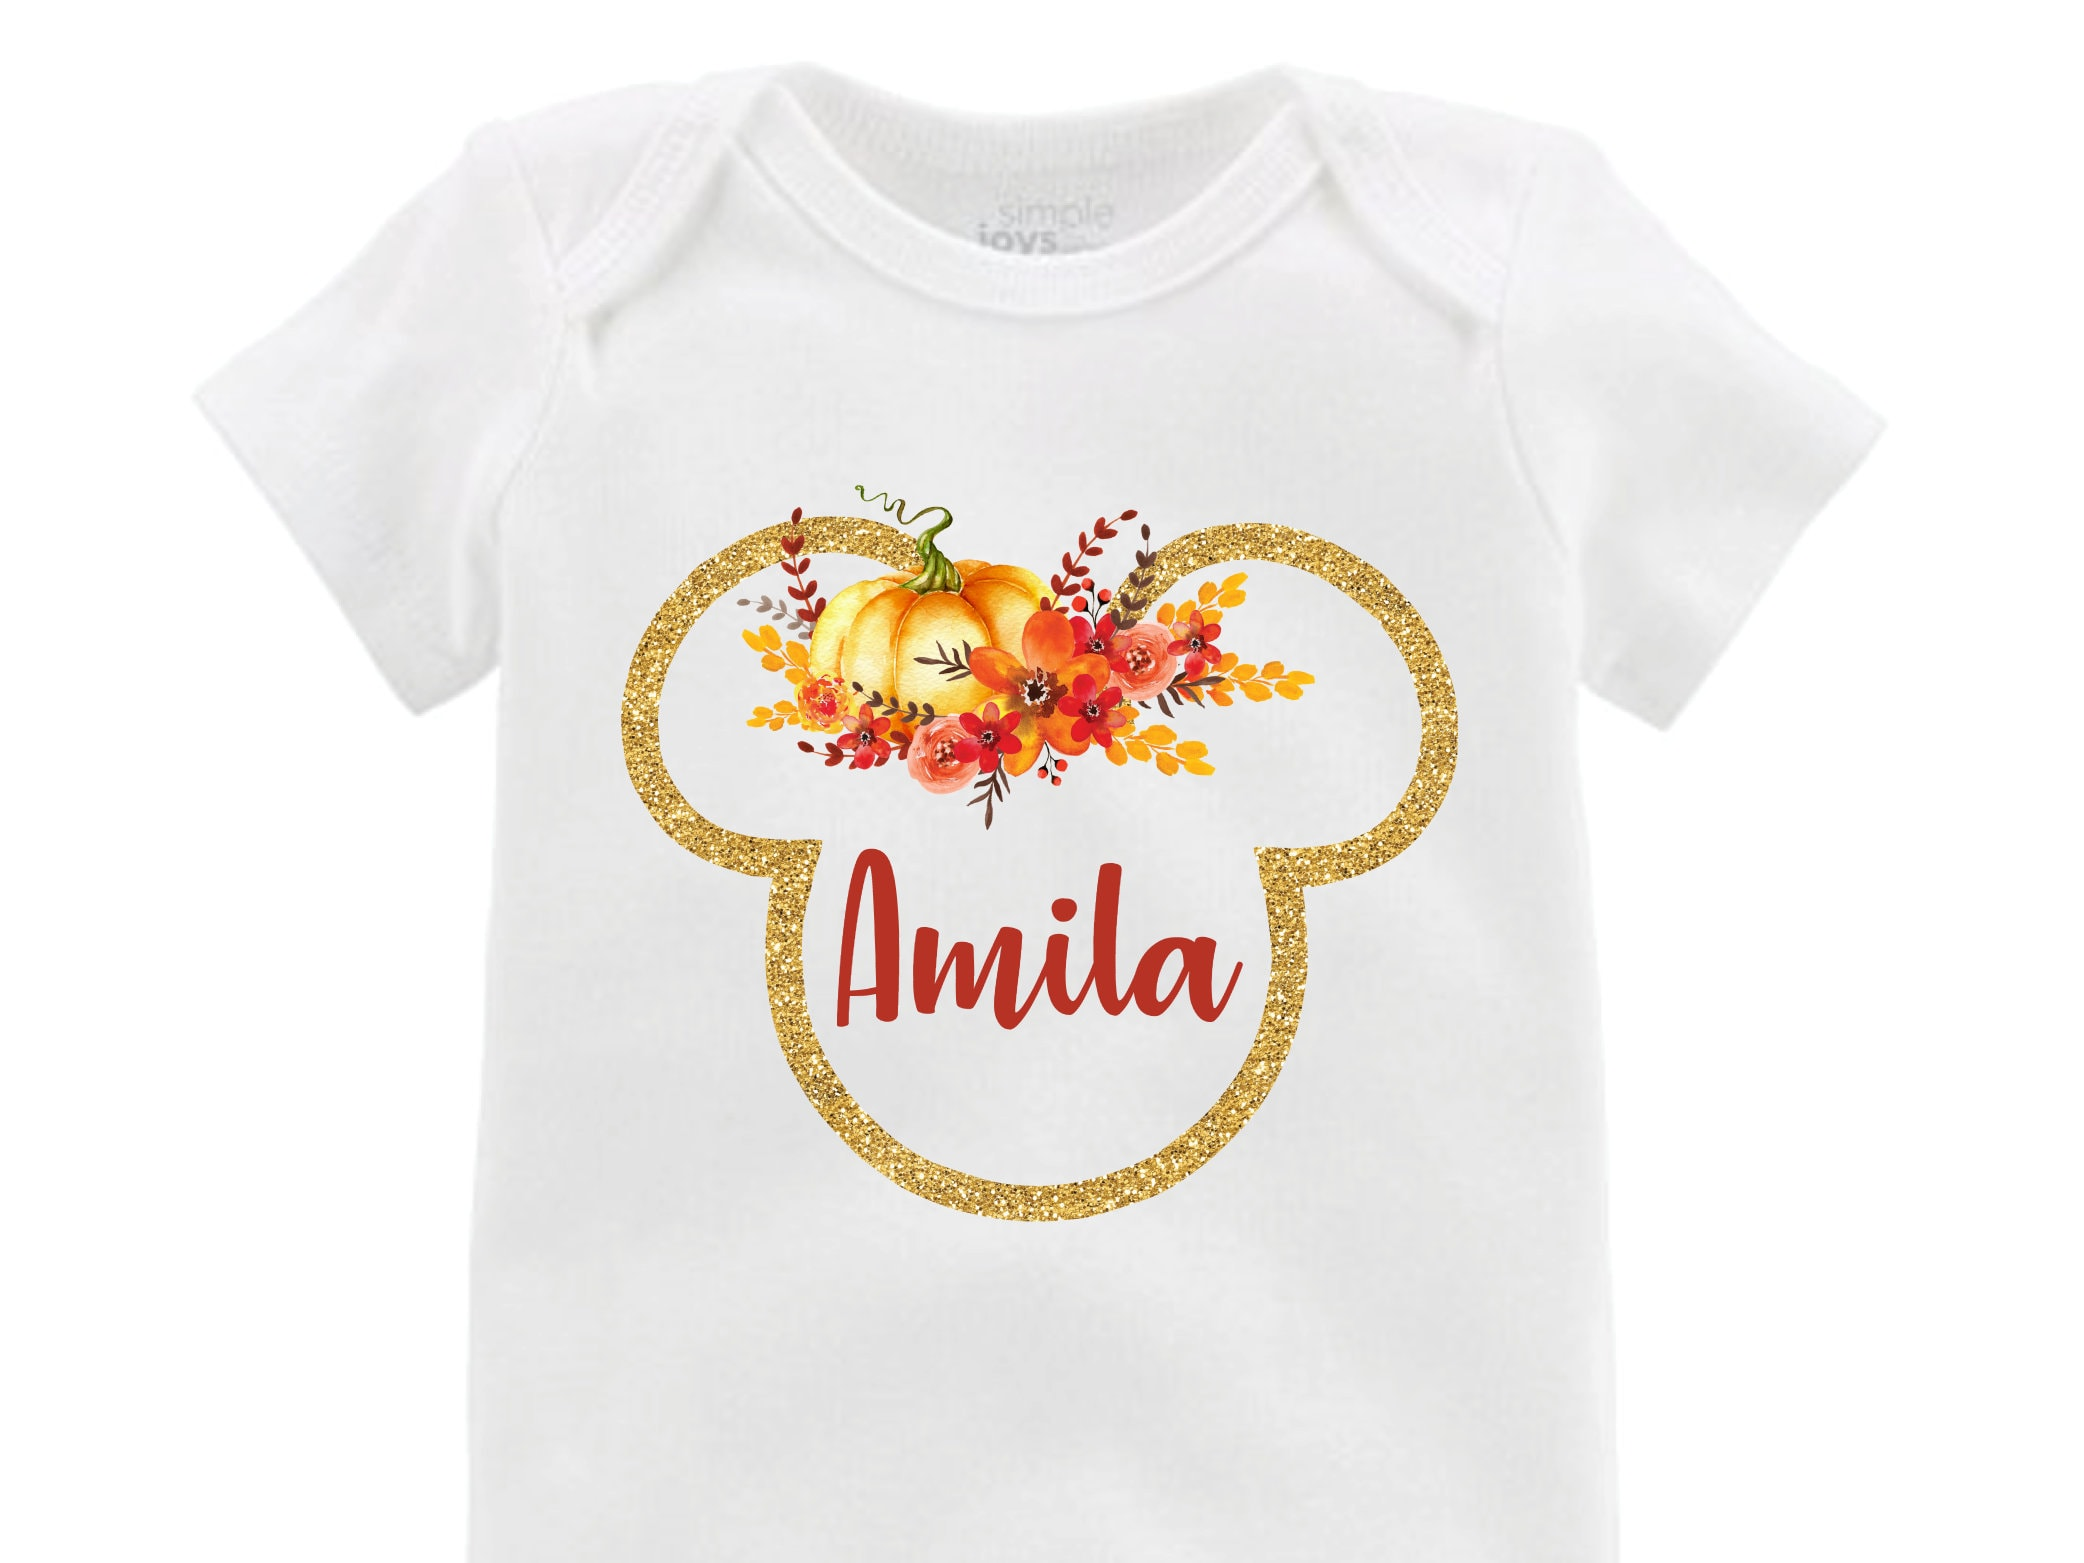 0c05114e1c2 Fall Pumpkin Glitter Sparkle Minnie Floral Ears Bodysuit Personalized  Flutter Sleeve Minnie Birthday Girl Monogram Halloween Minnie. gallery  photo ...